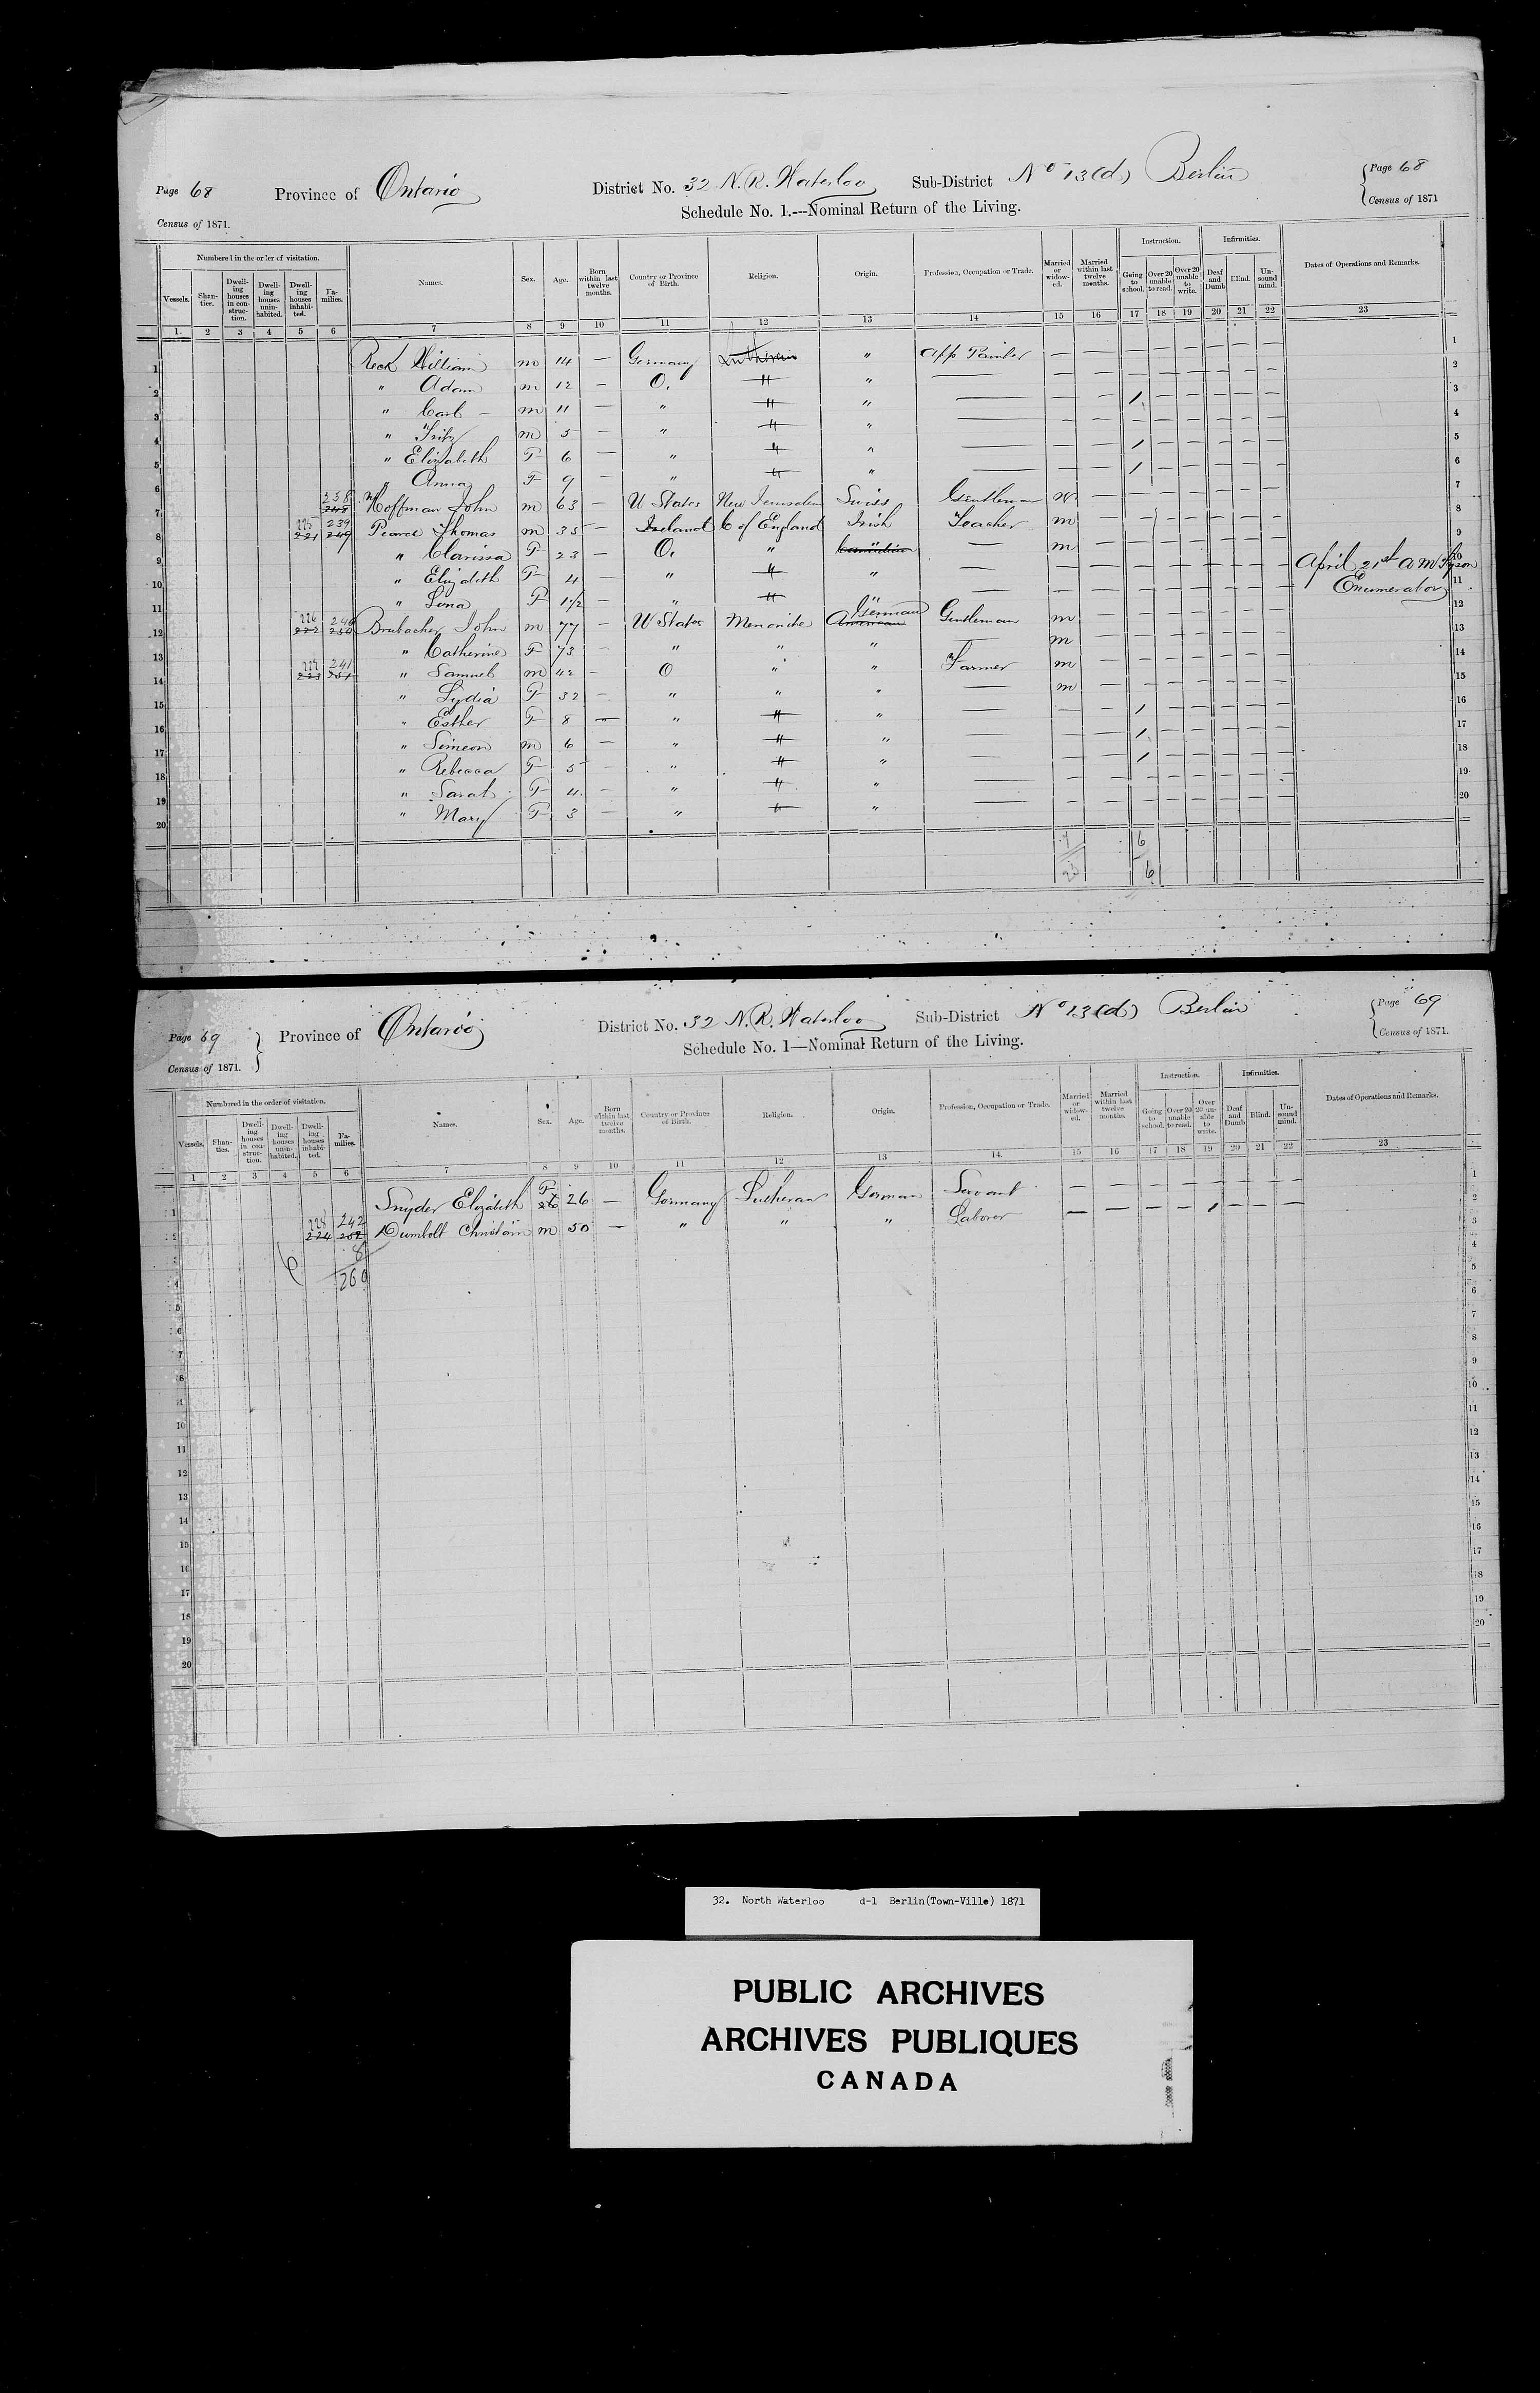 Title: Census of Canada, 1871 - Mikan Number: 142105 - Microform: c-9944